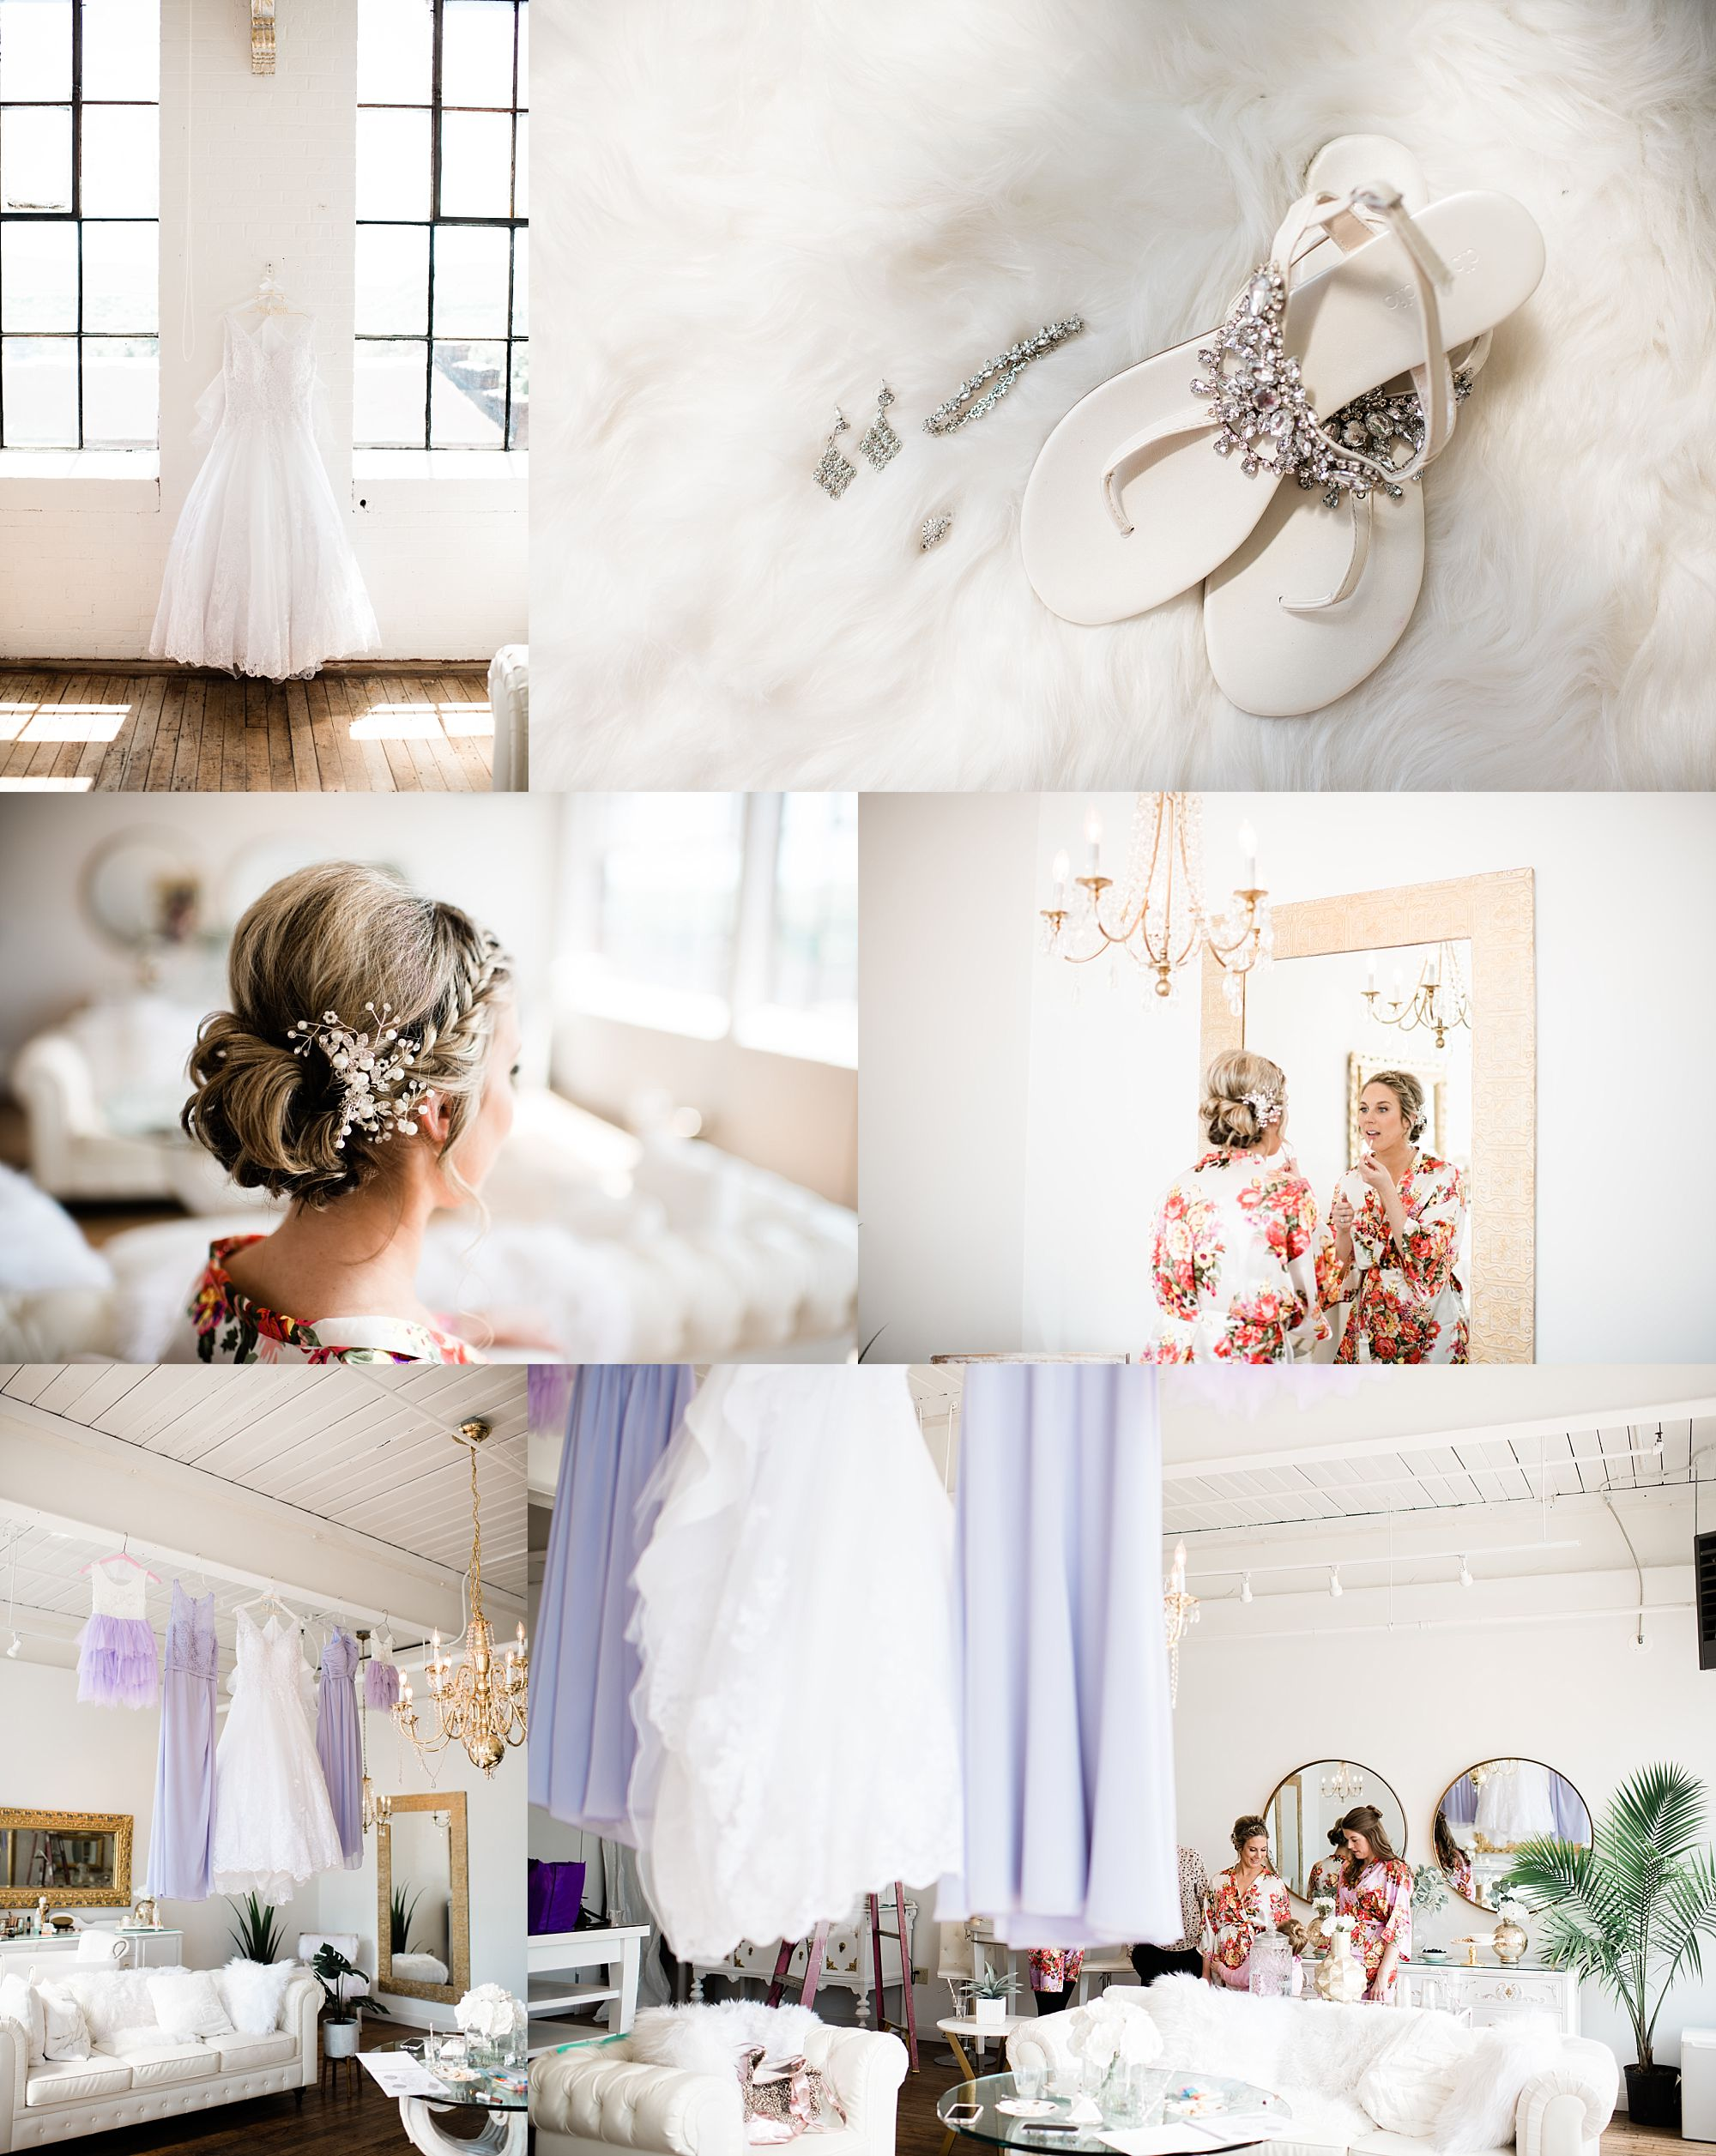 Williamsport PA Wedding bridal party studio space details